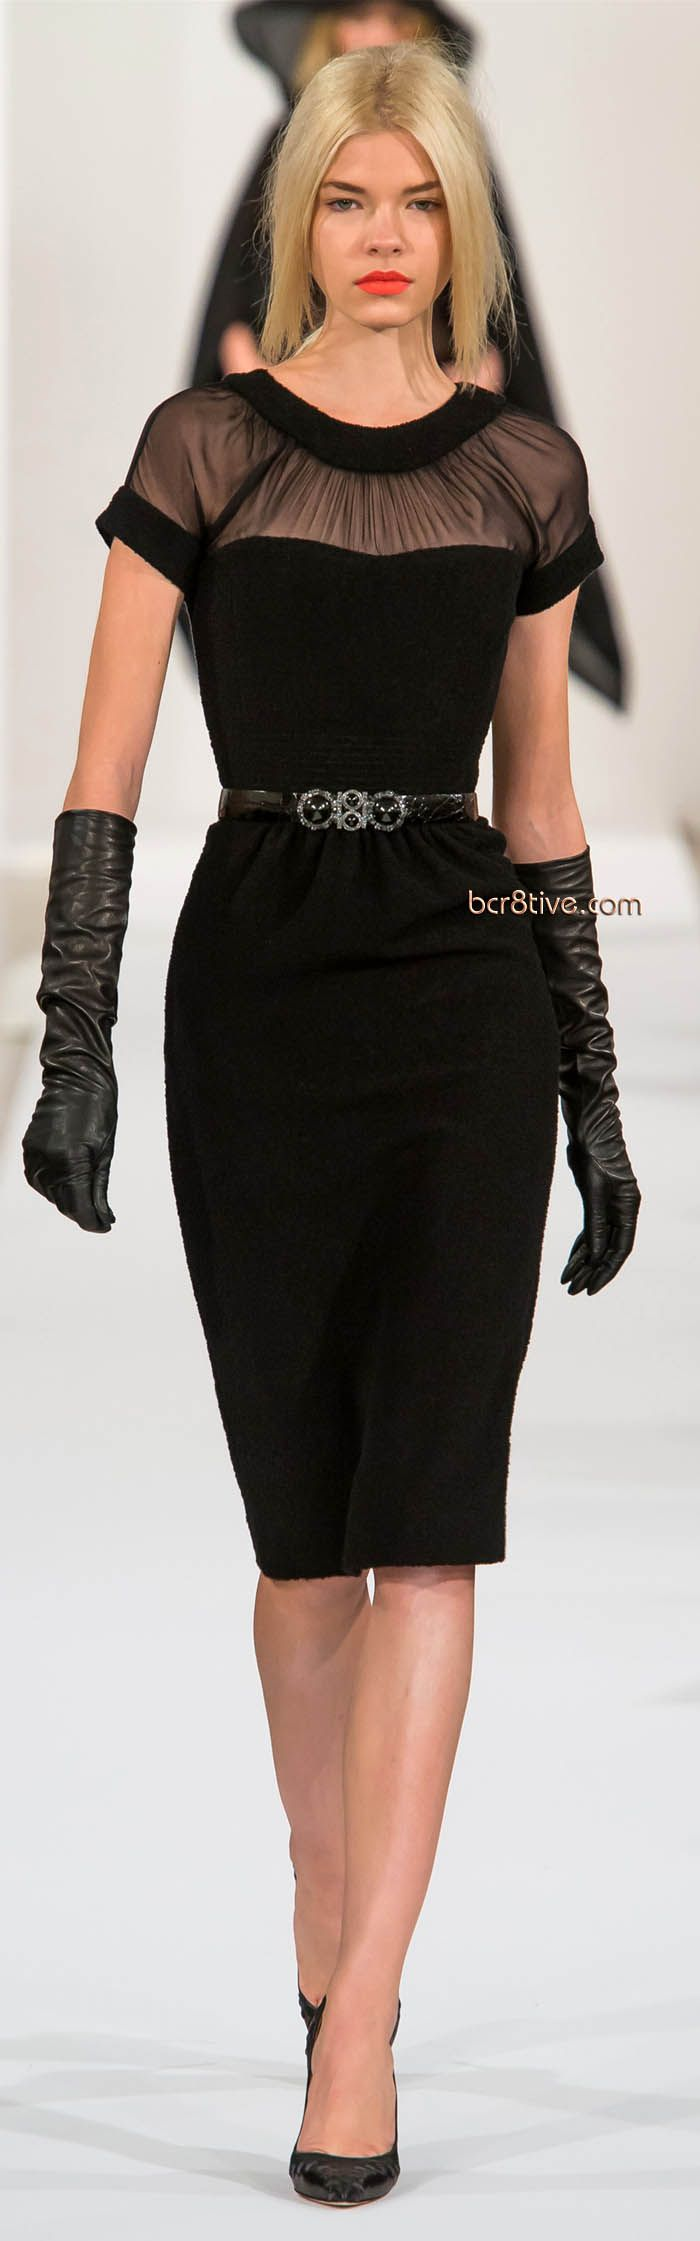 Oscar de la Renta Fall Winter 2013 New York Fashion Week.  Everything is perfect but her hair...should be in a chignon.